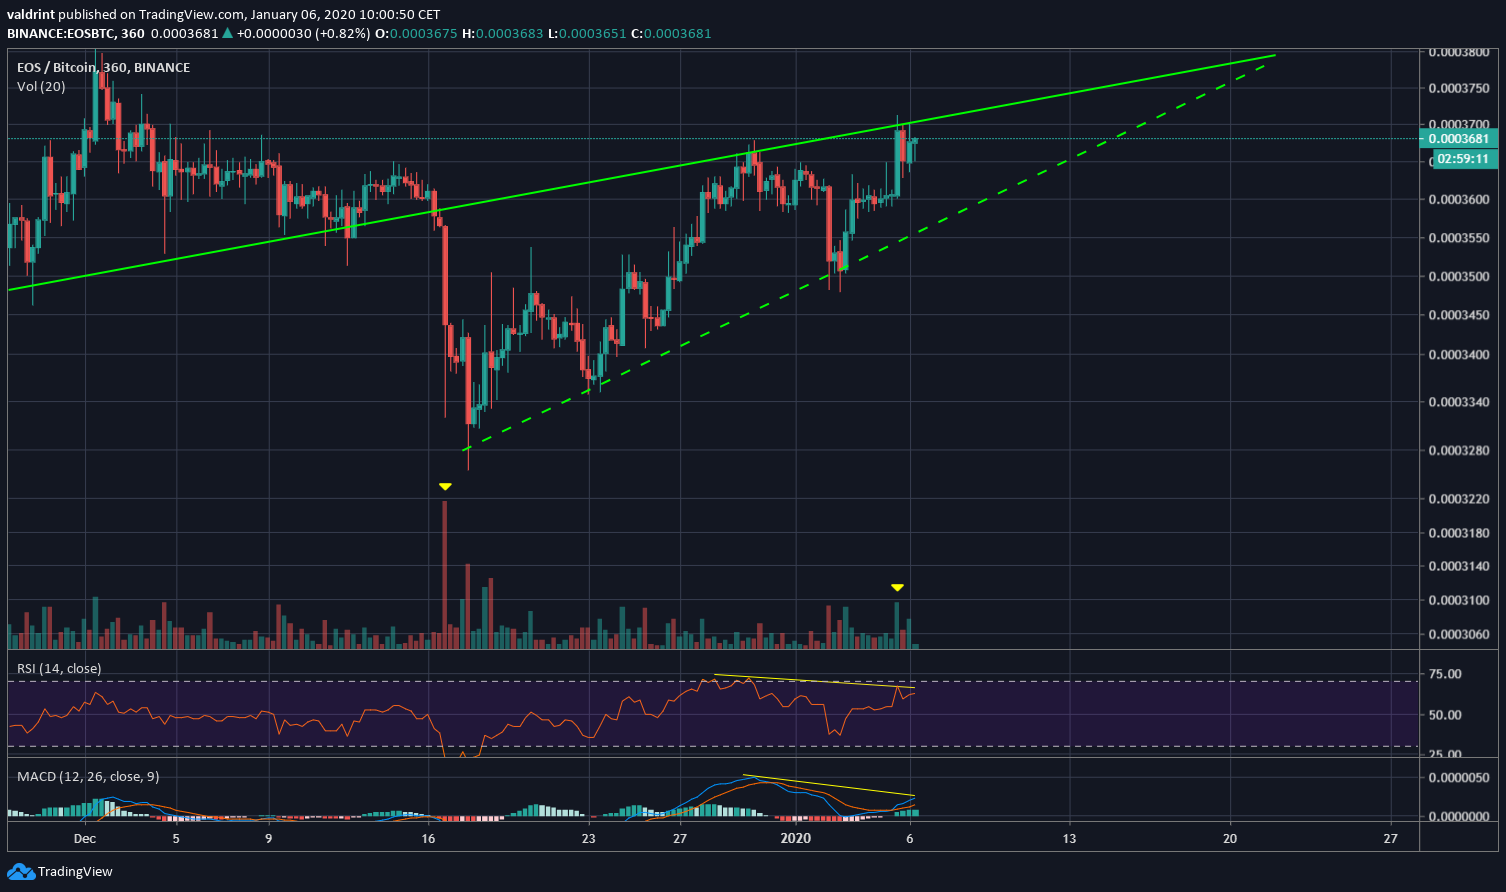 EOS Ascending Wedge